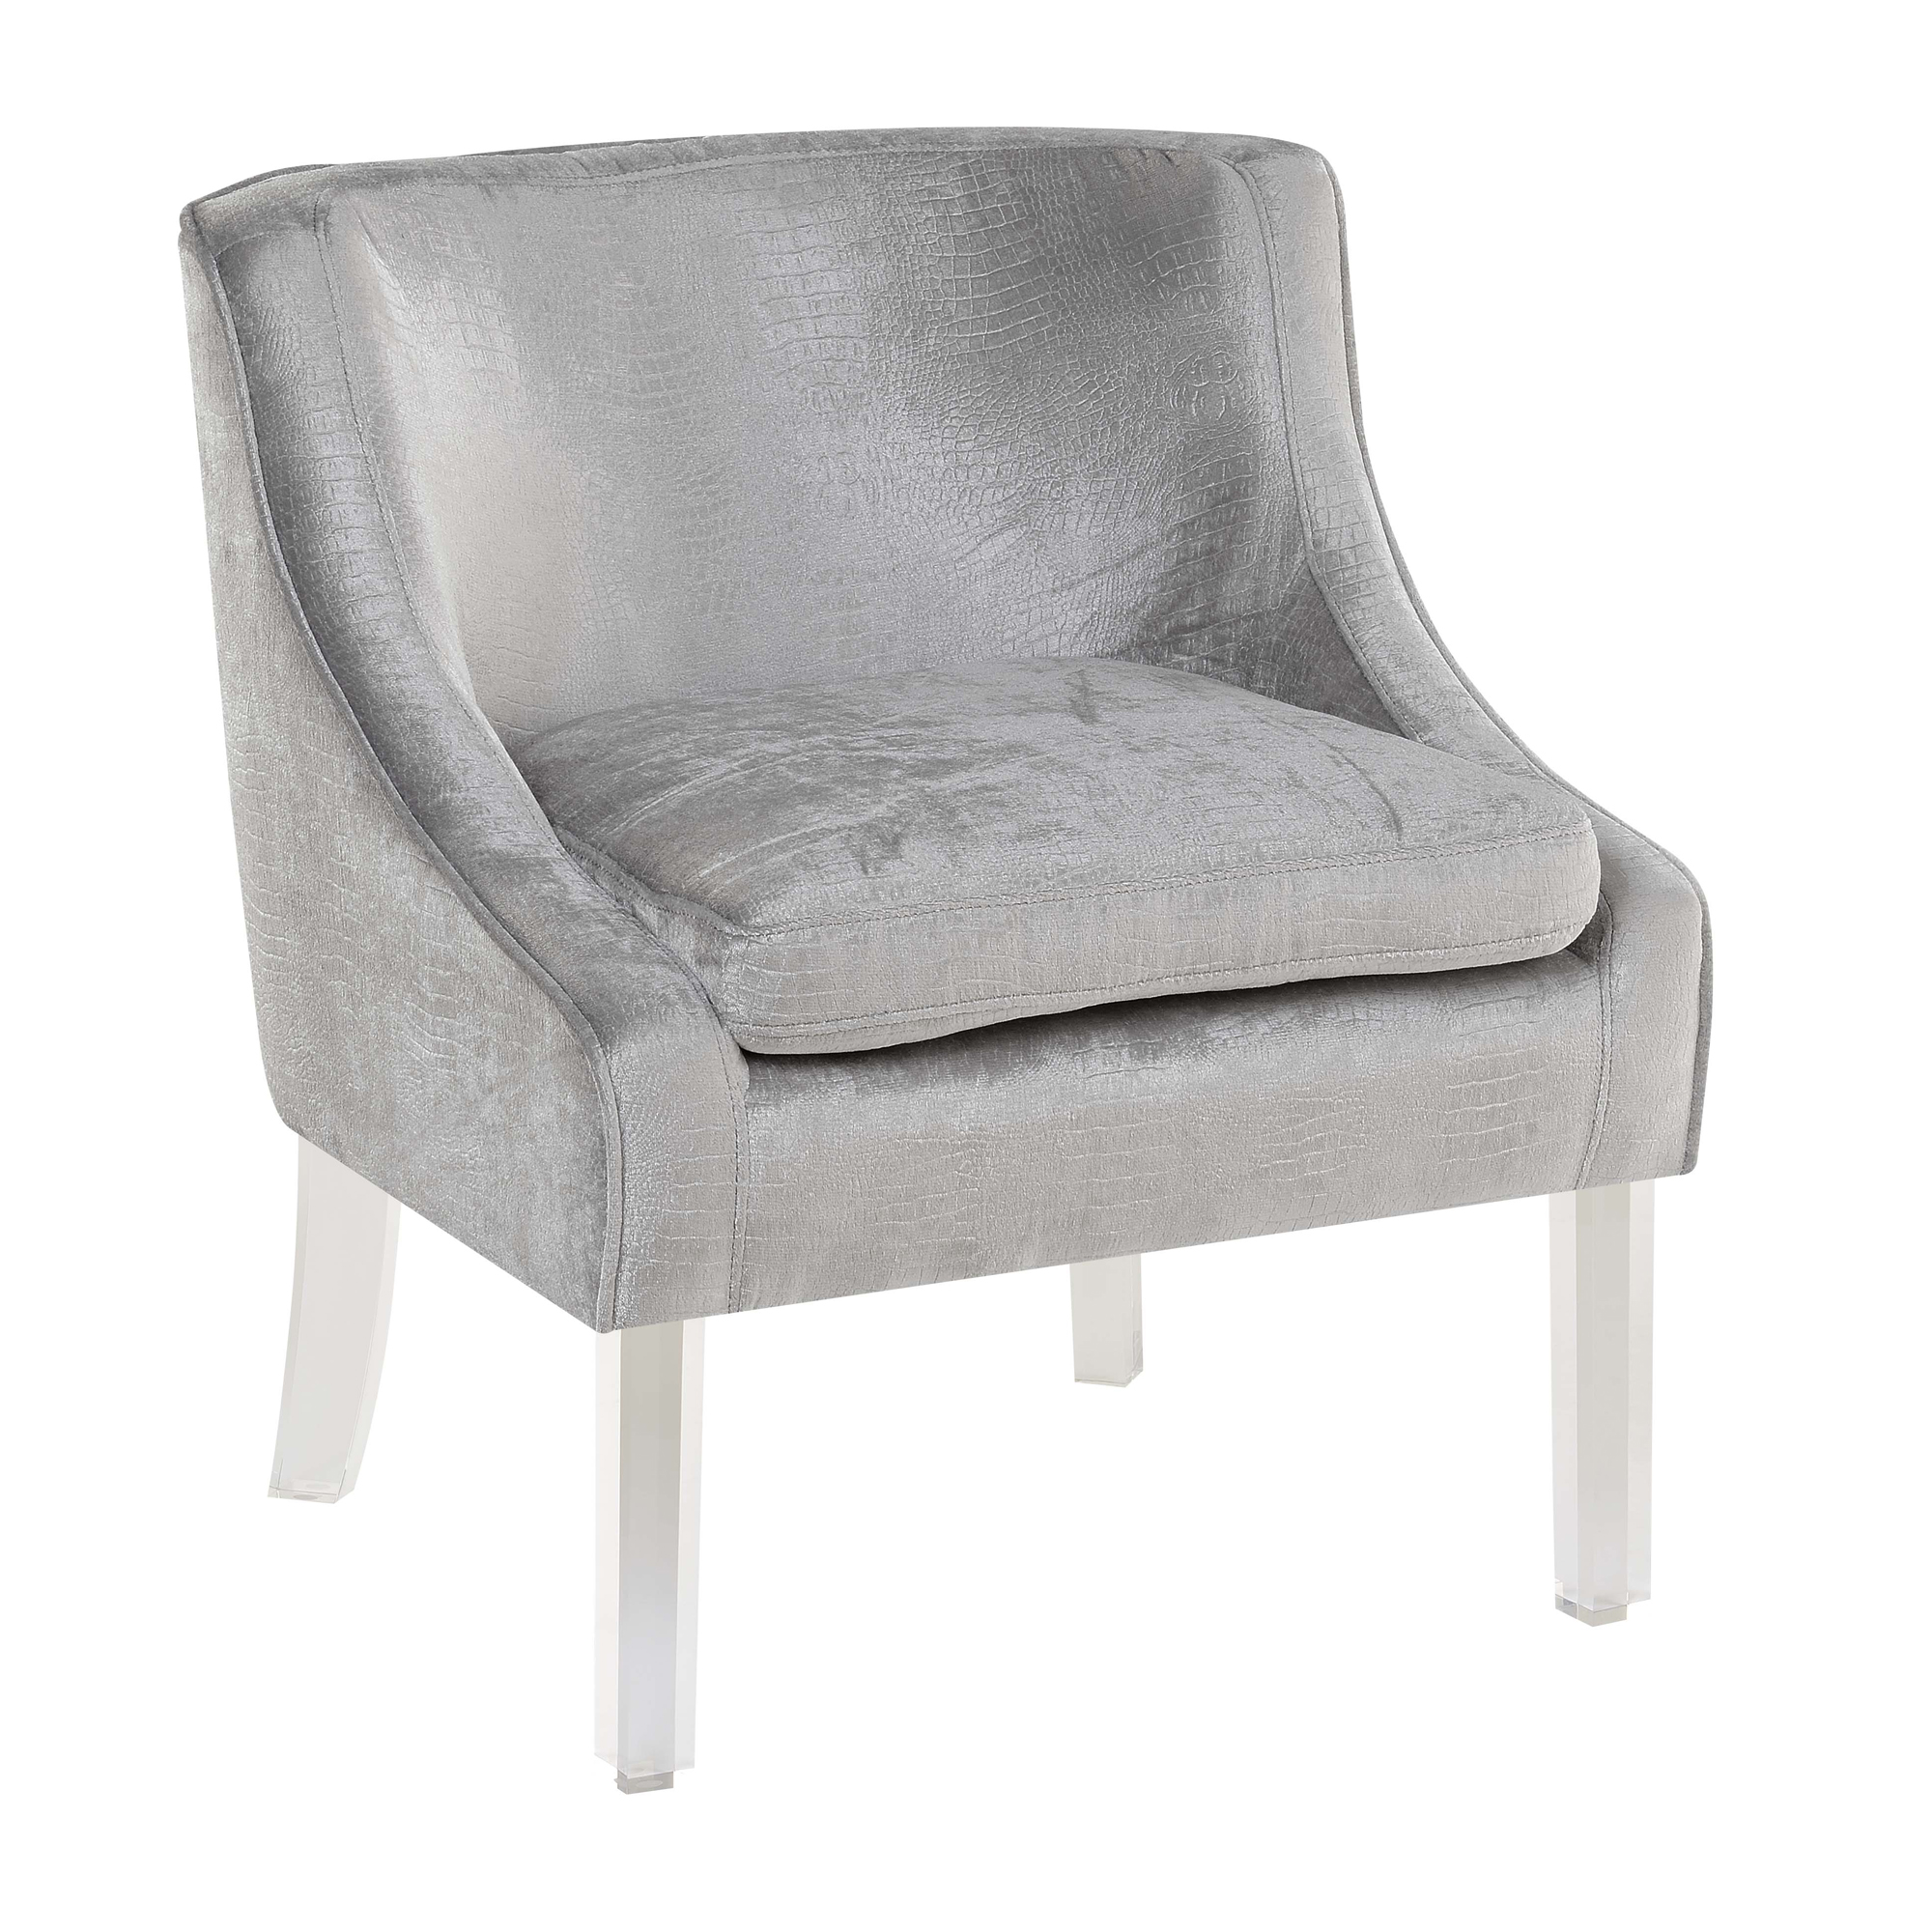 Picket House Furnishings Tristan Barrel Chair